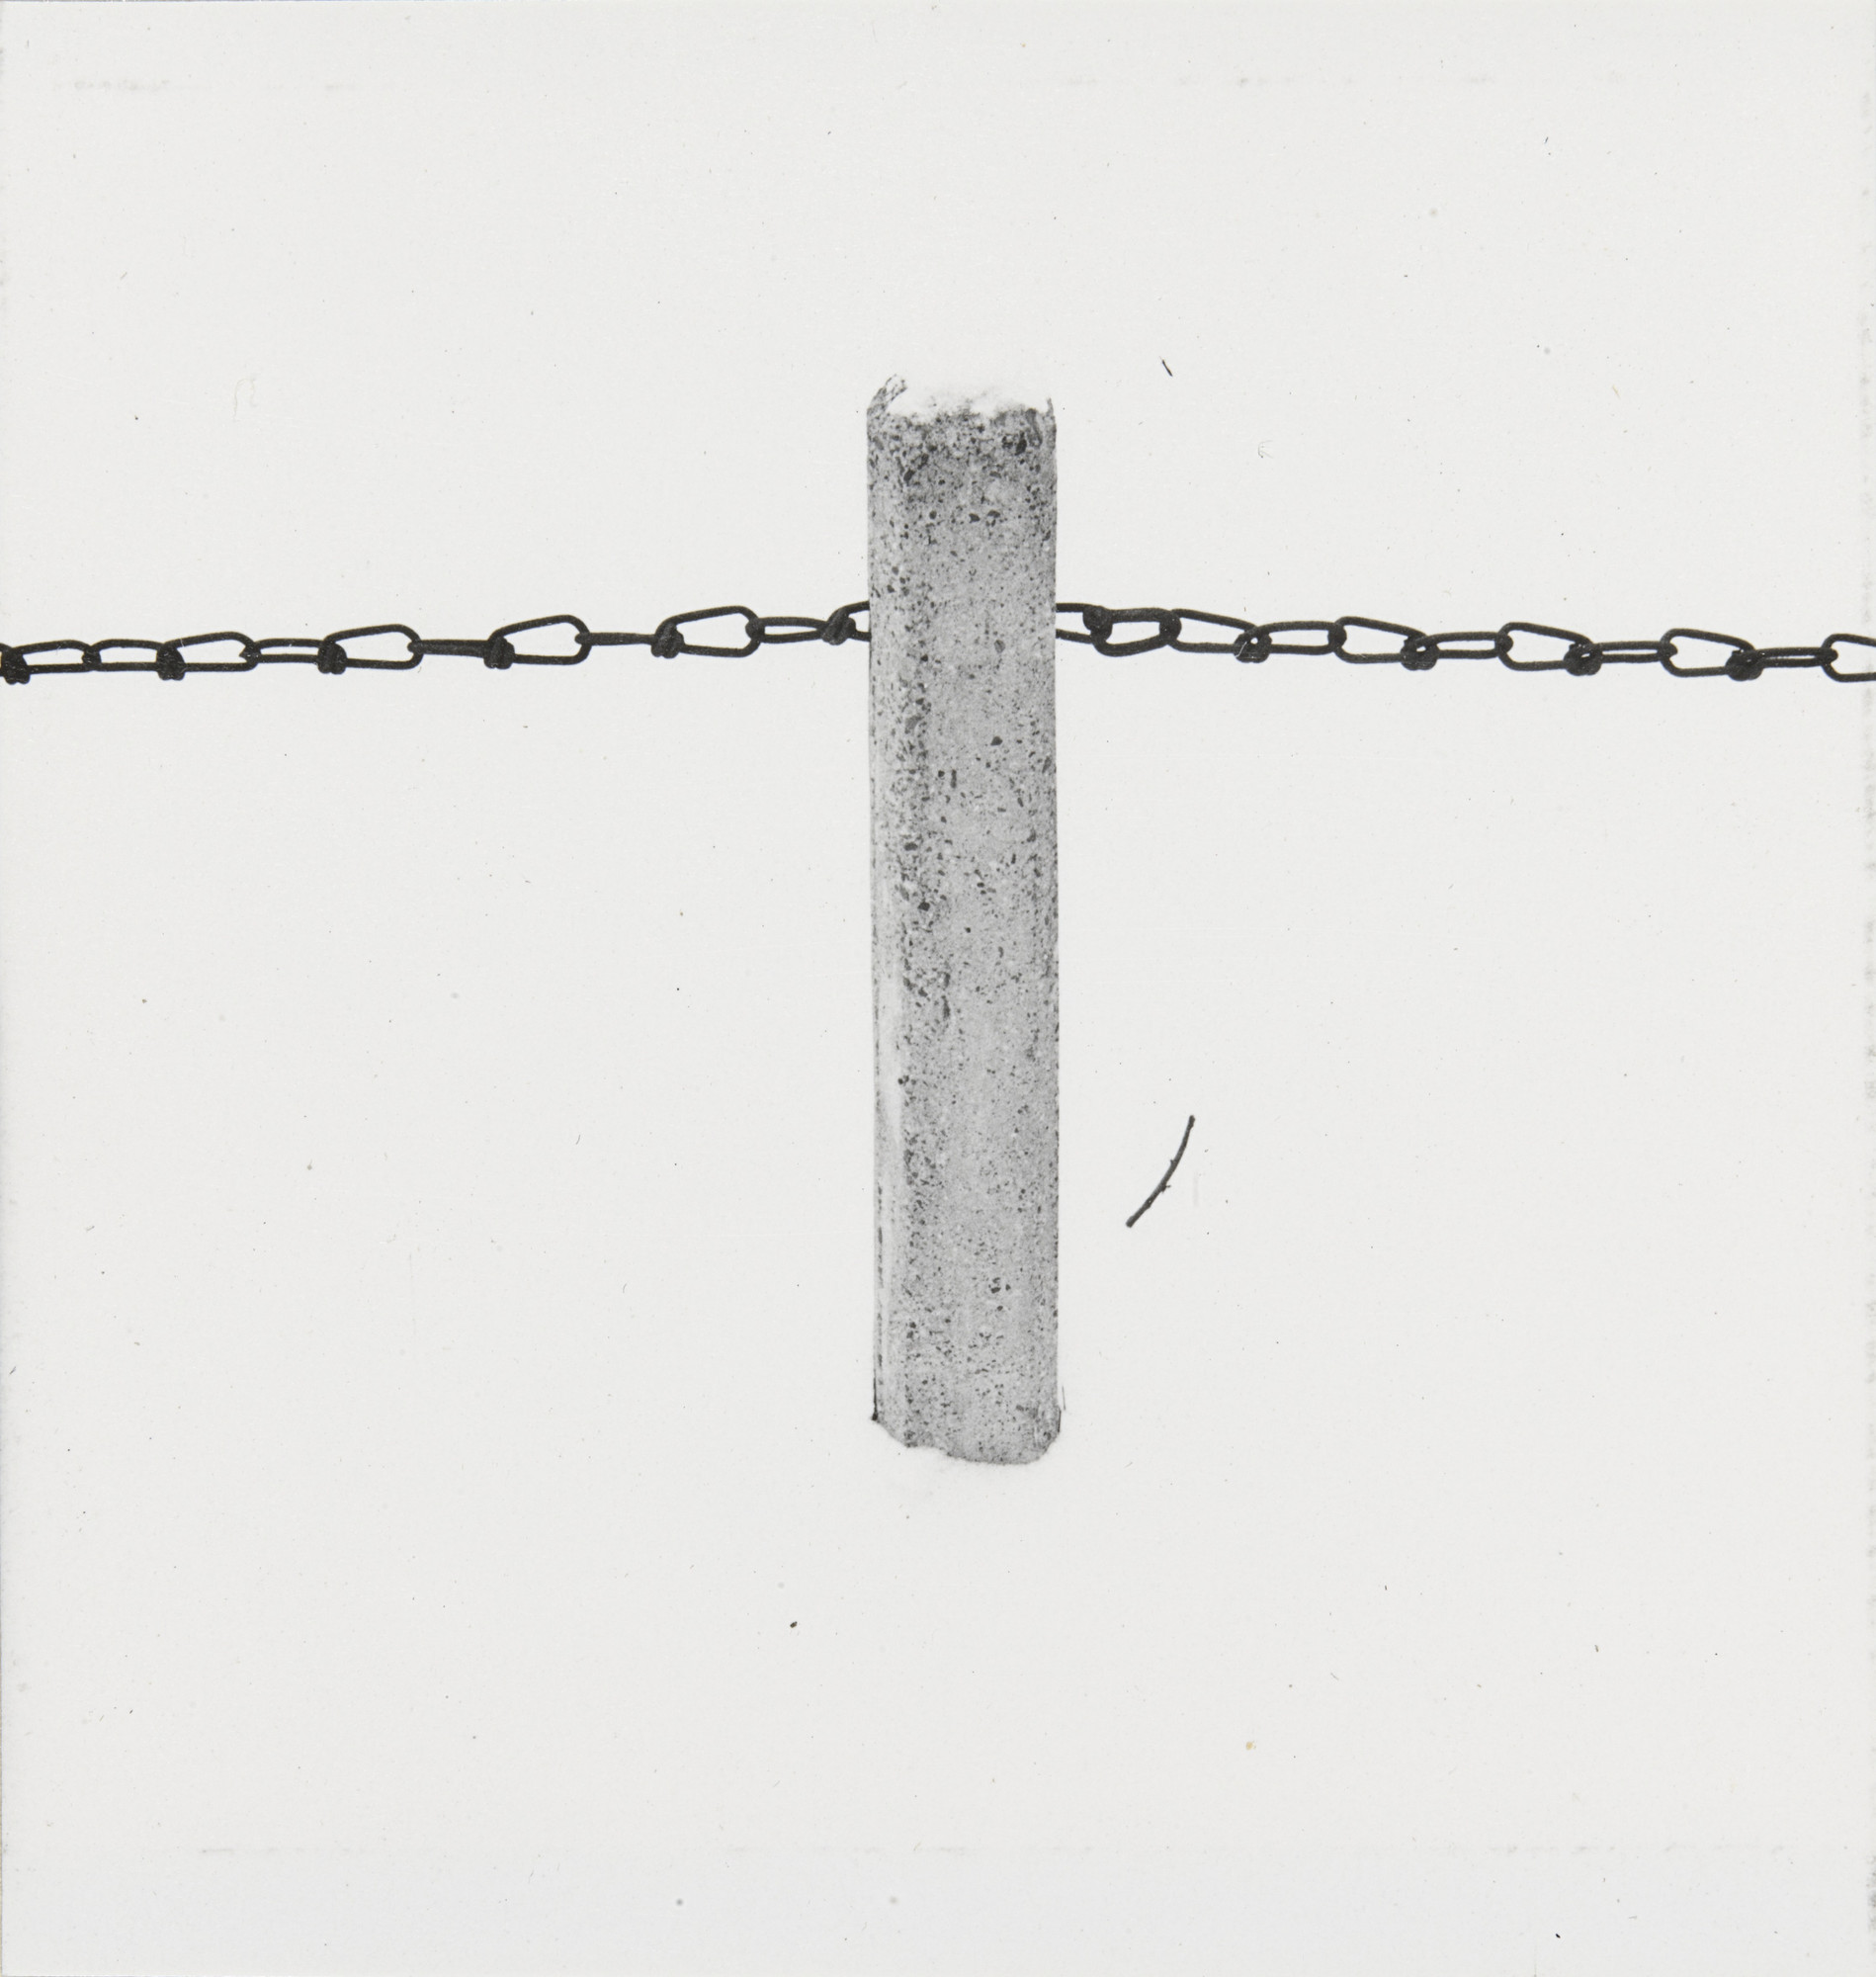 Harry Callahan. Objects in snow. 1947